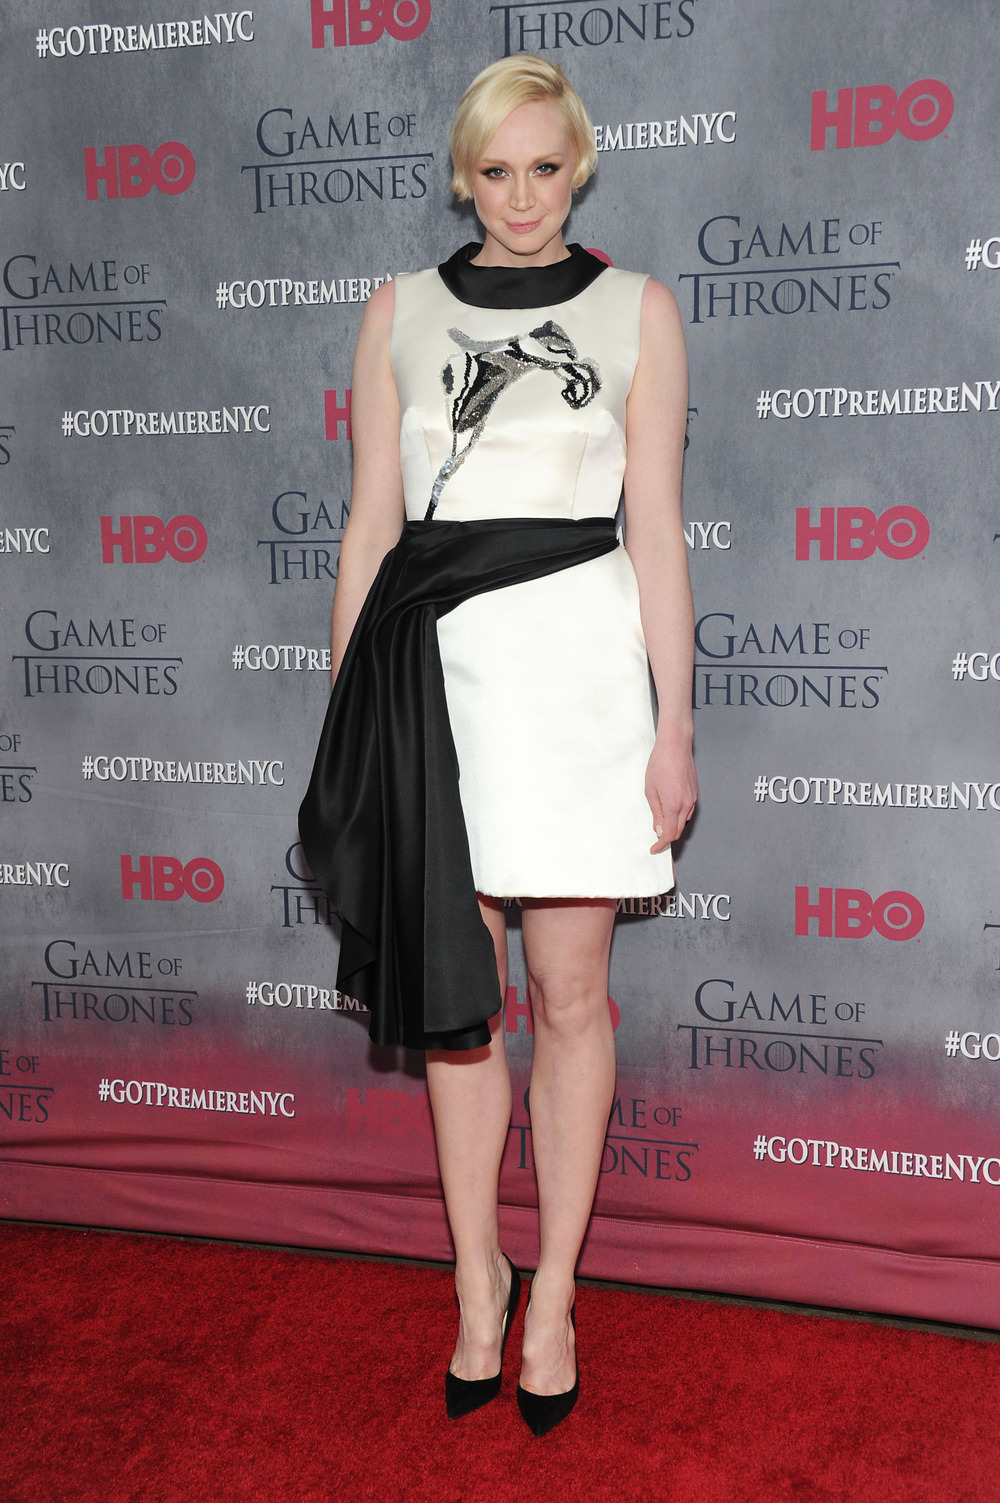 Game of Thrones Star Gwendoline Christie Joins Star Wars Cast! (VIDEO)